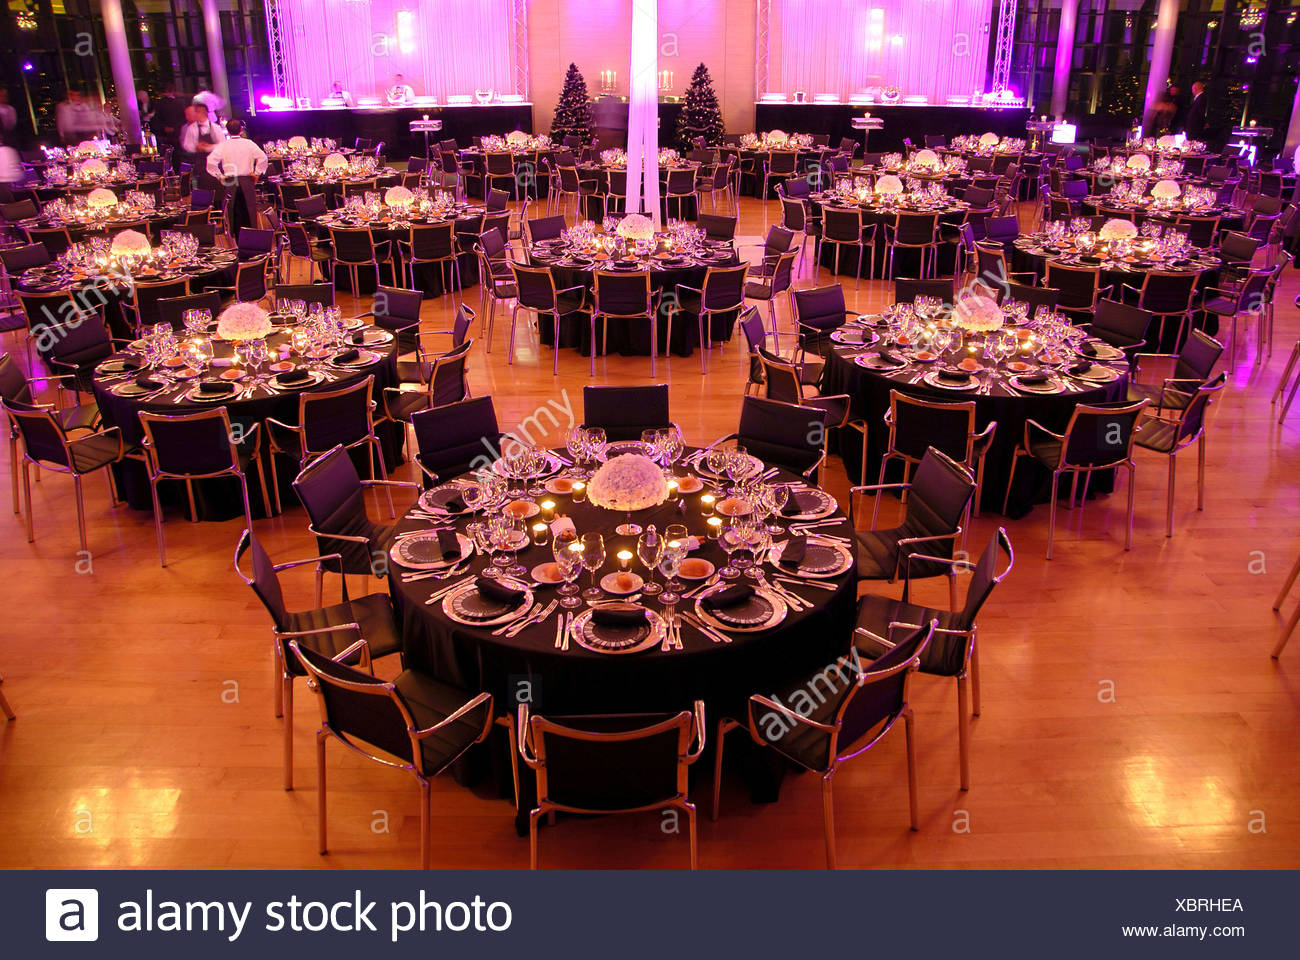 Event company evening decoration adornment table desk festival food dinner hall Food indoor indoors gala tables evening Stock Photo